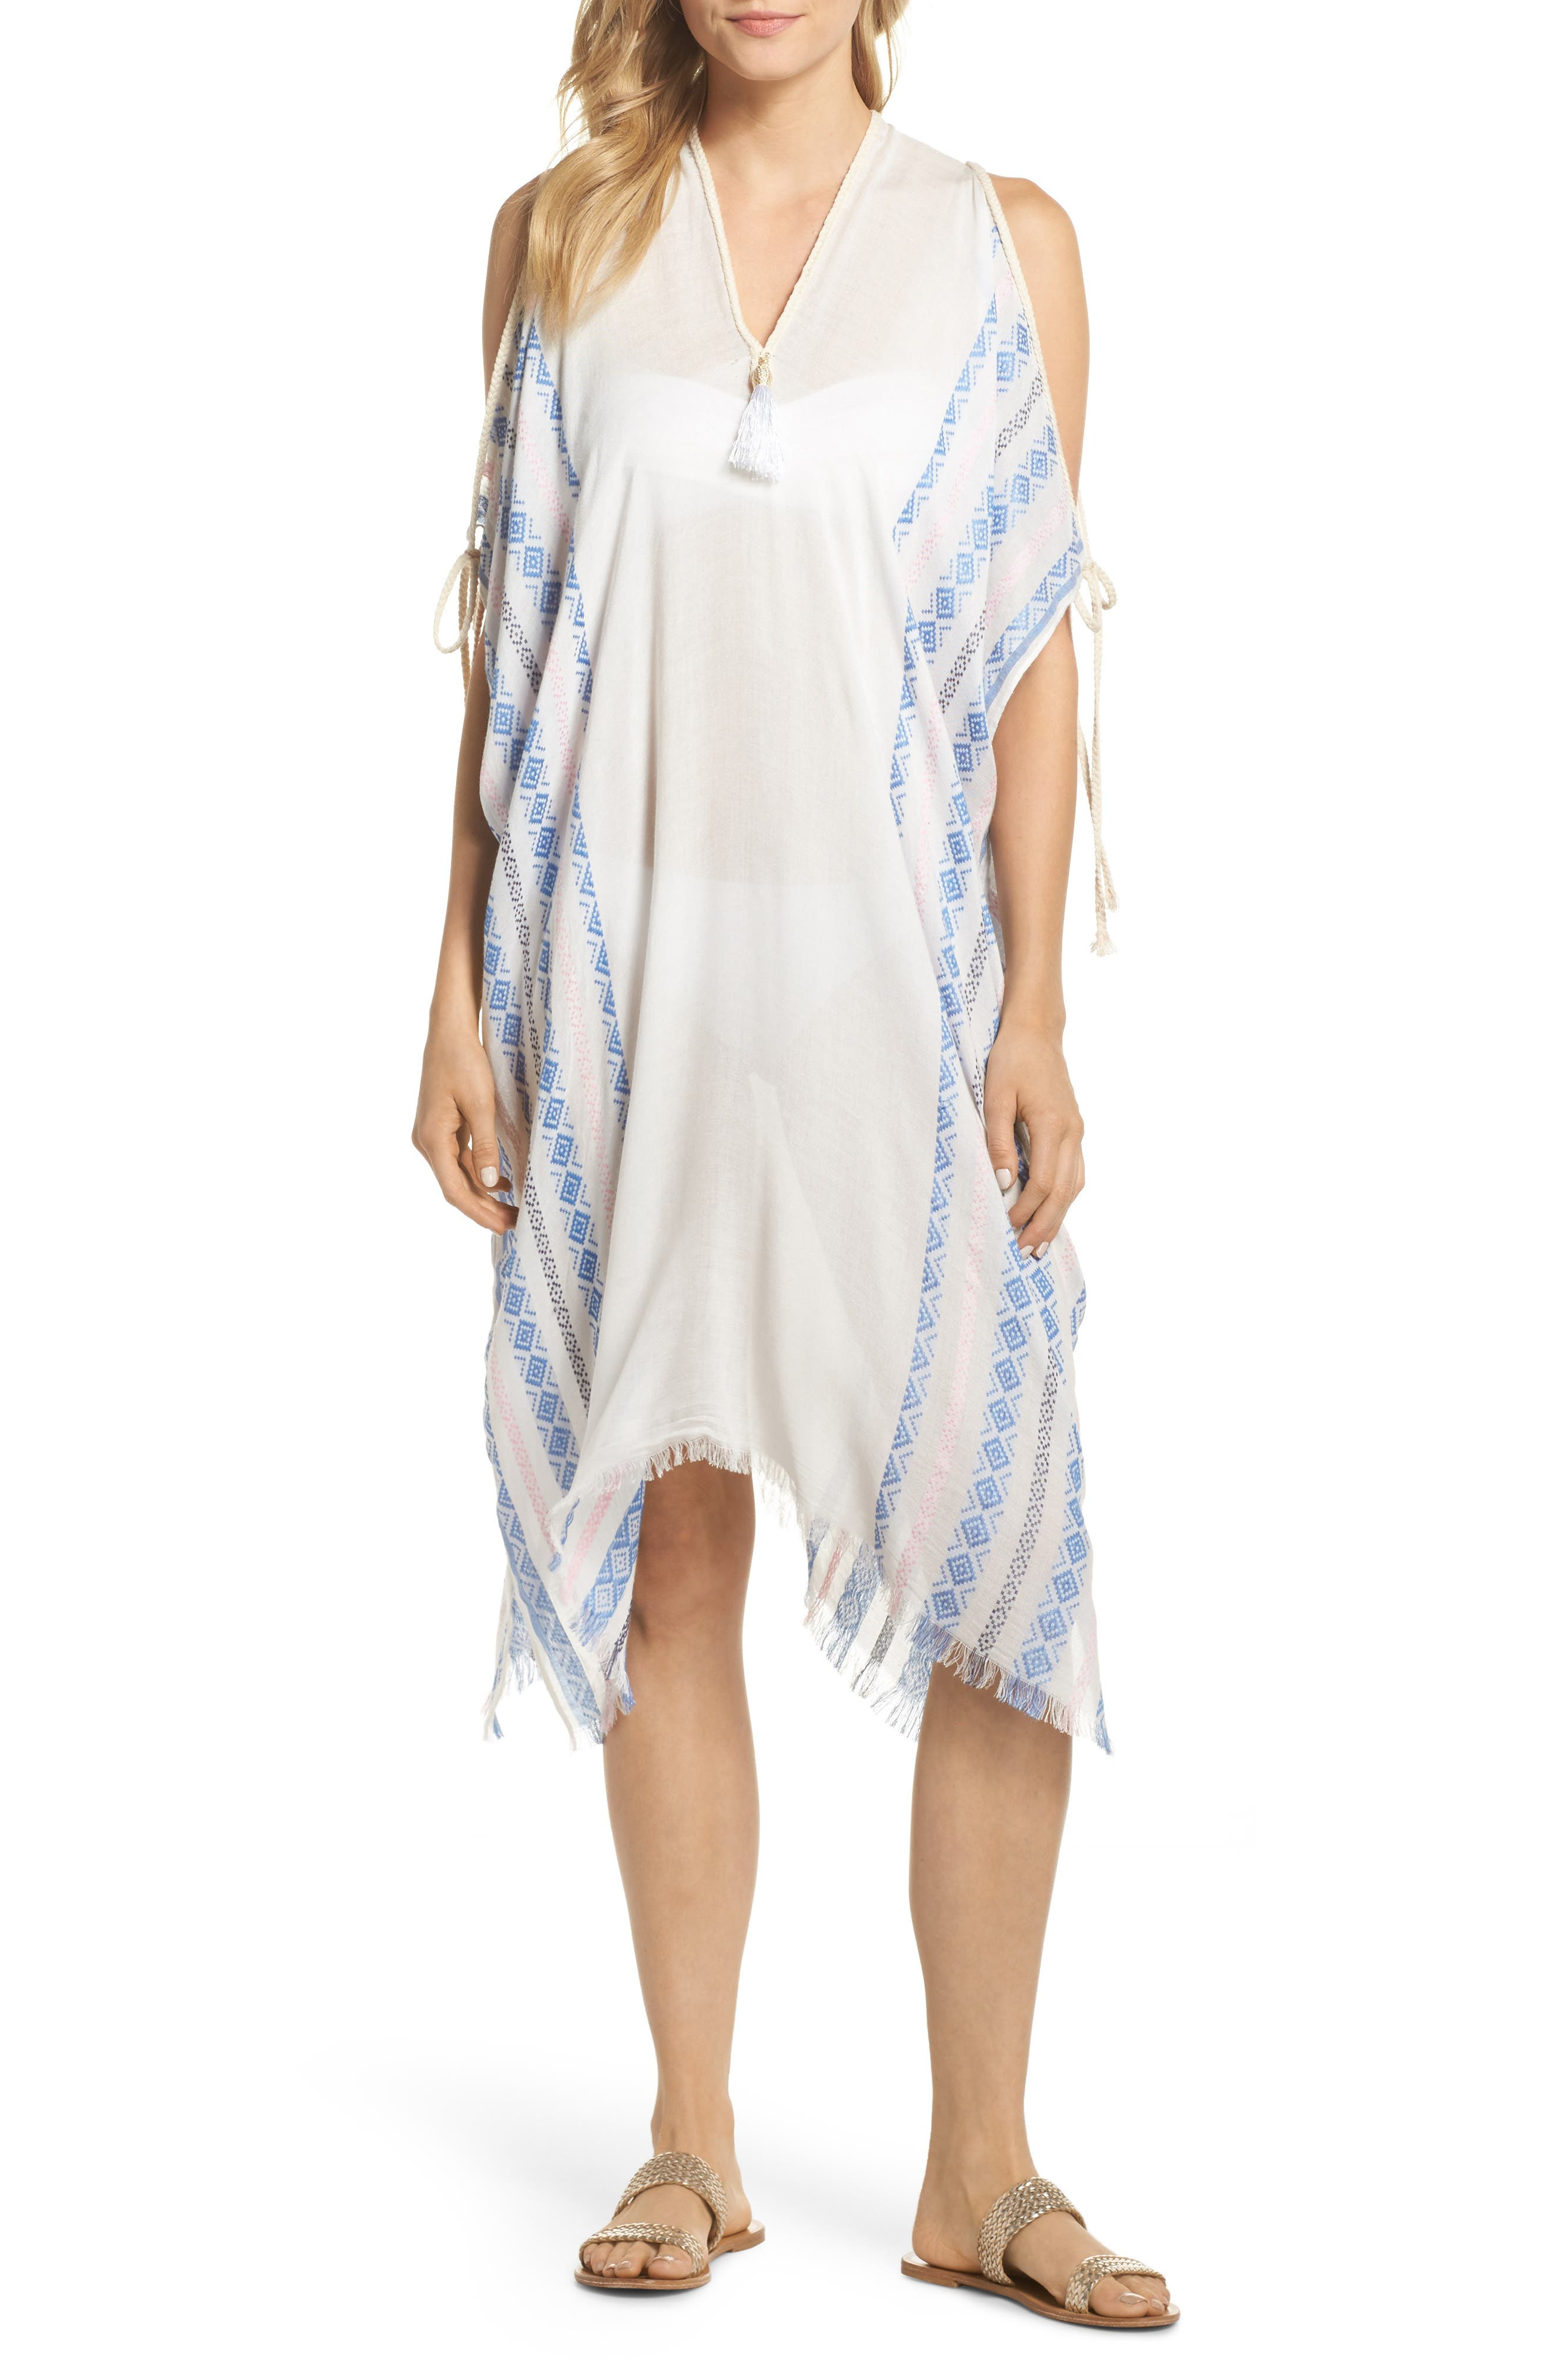 Main Image - Pool to Party Anytime Cover-Up Caftan